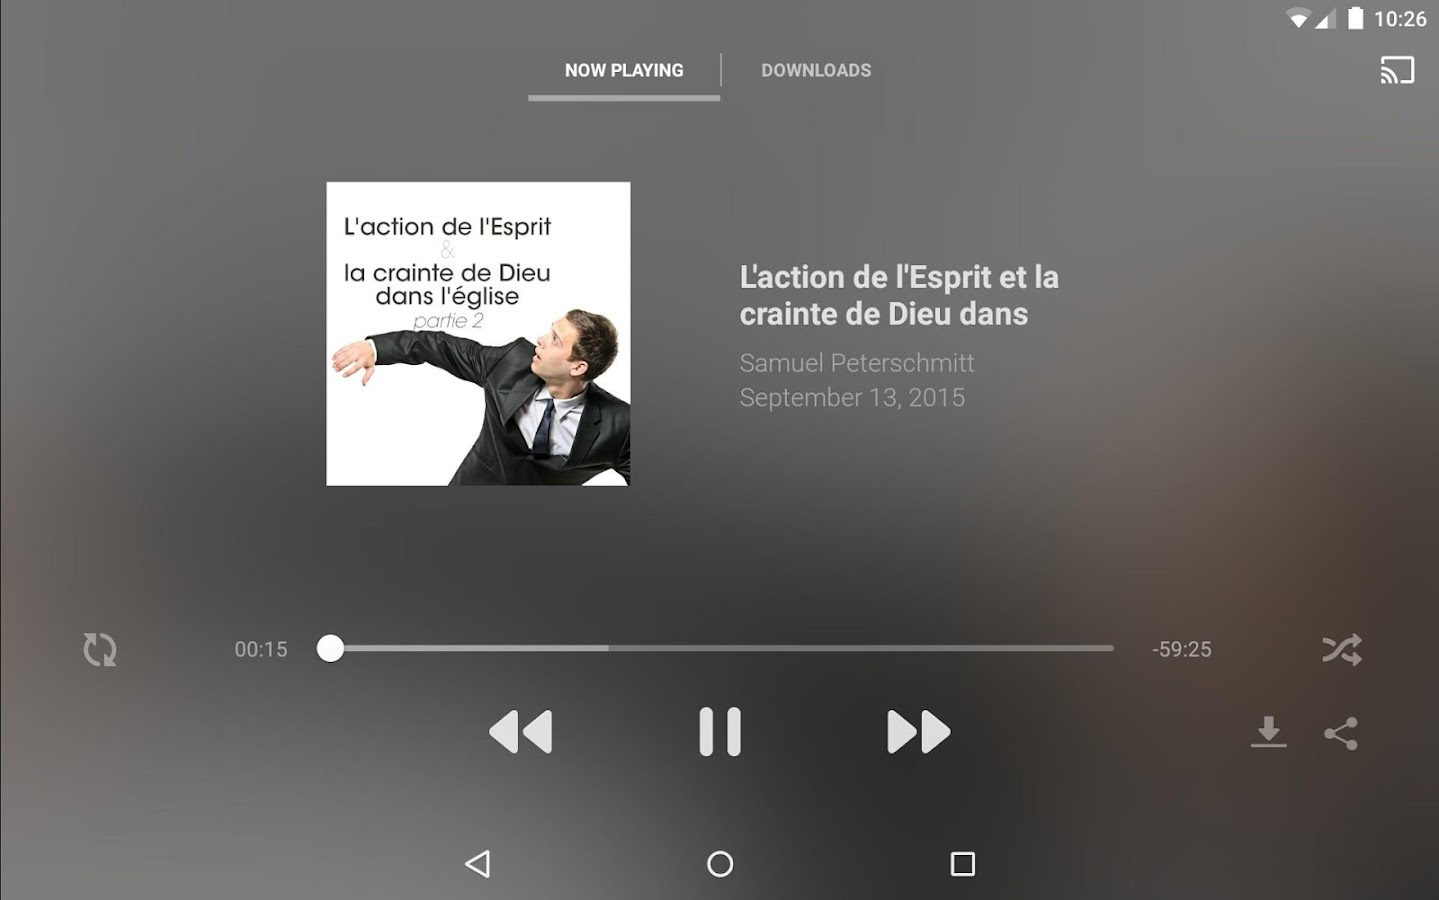 La porte ouverte android apps on google play - Culte en direct porte ouverte mulhouse ...